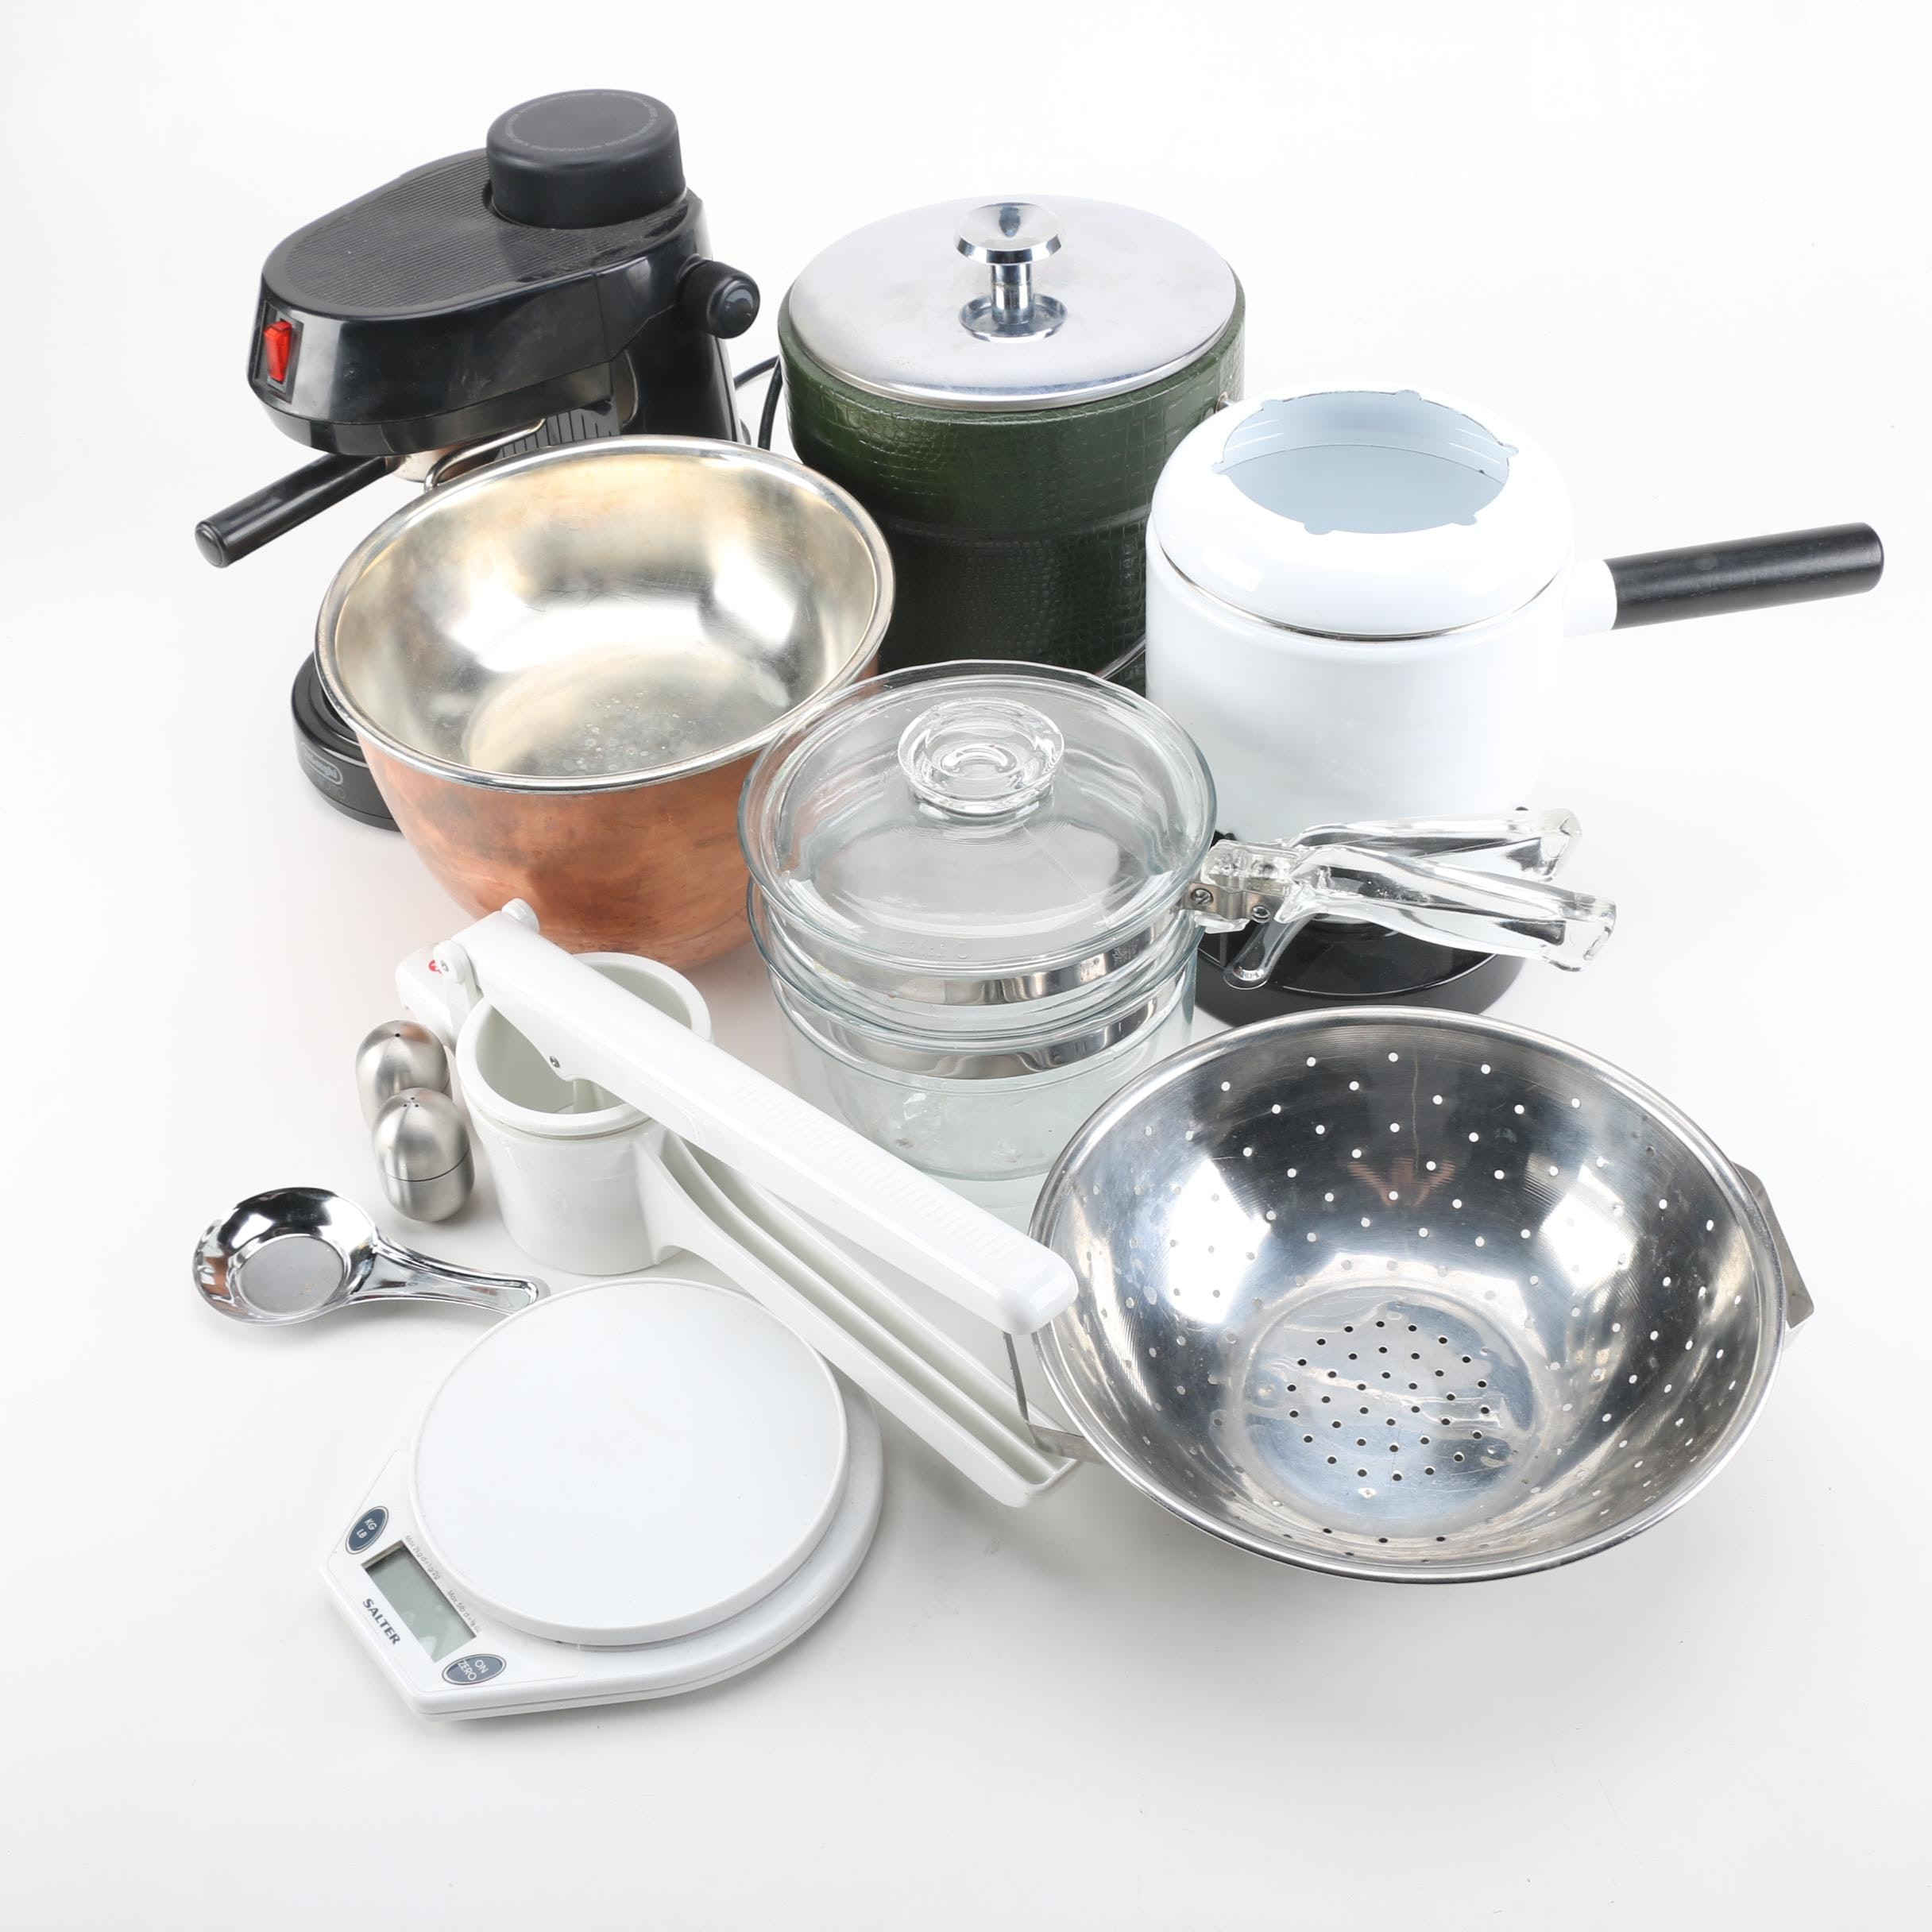 Assortment of Kitchenware